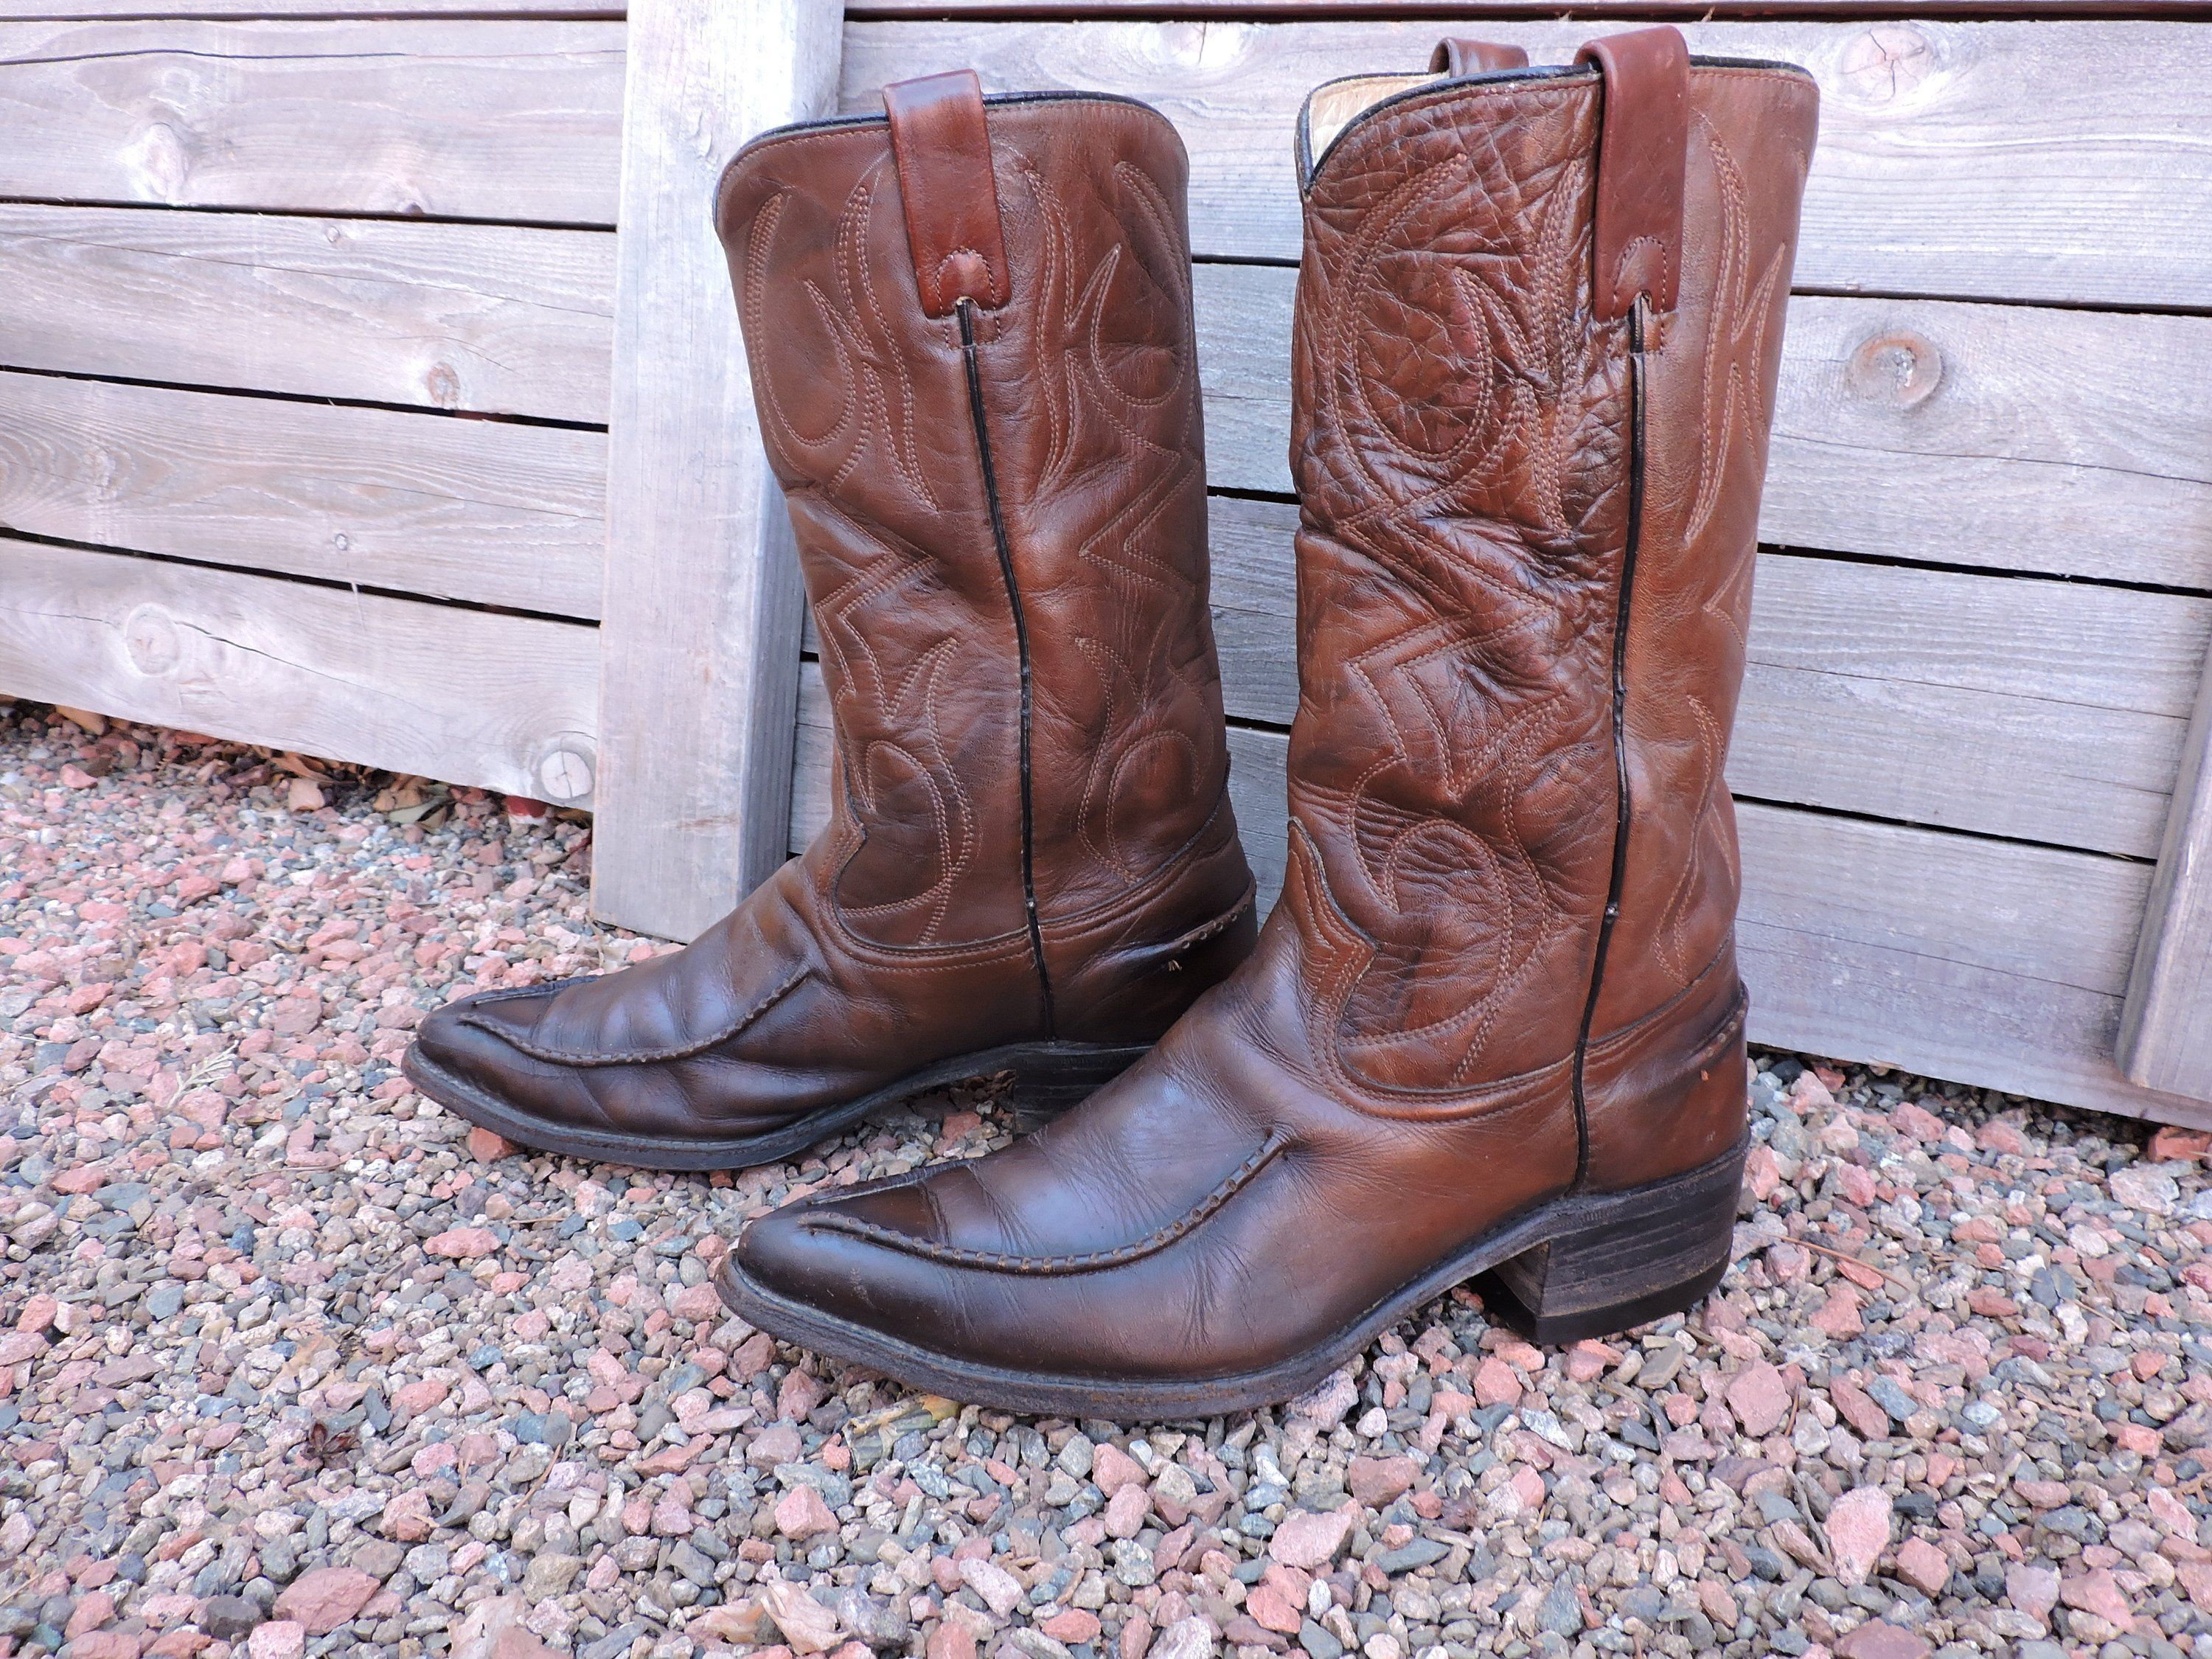 273fc8cbb1b Vintage 60s Cowboy boots mens 9 EE / Texas Imperial Boots USA Free ...